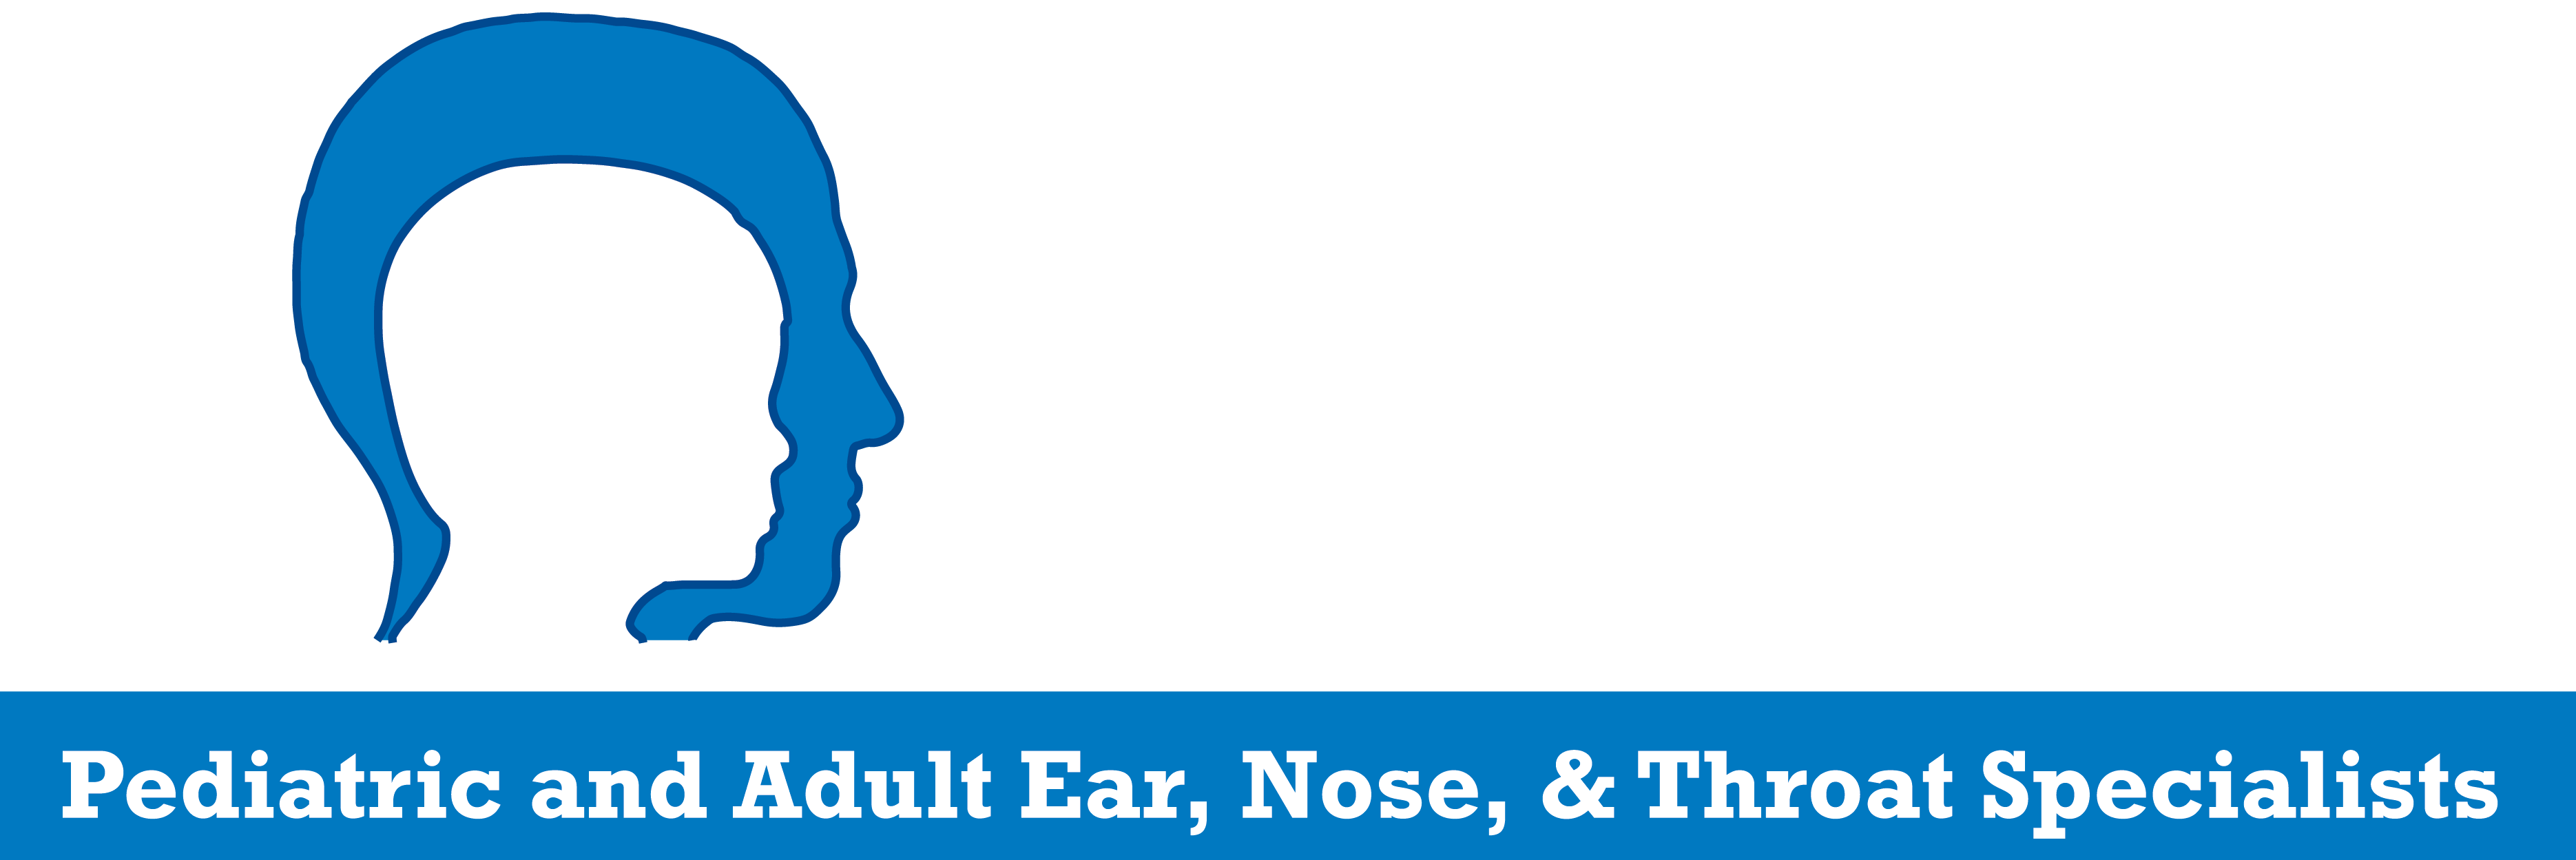 Otolaryngology Specialists of North Texas